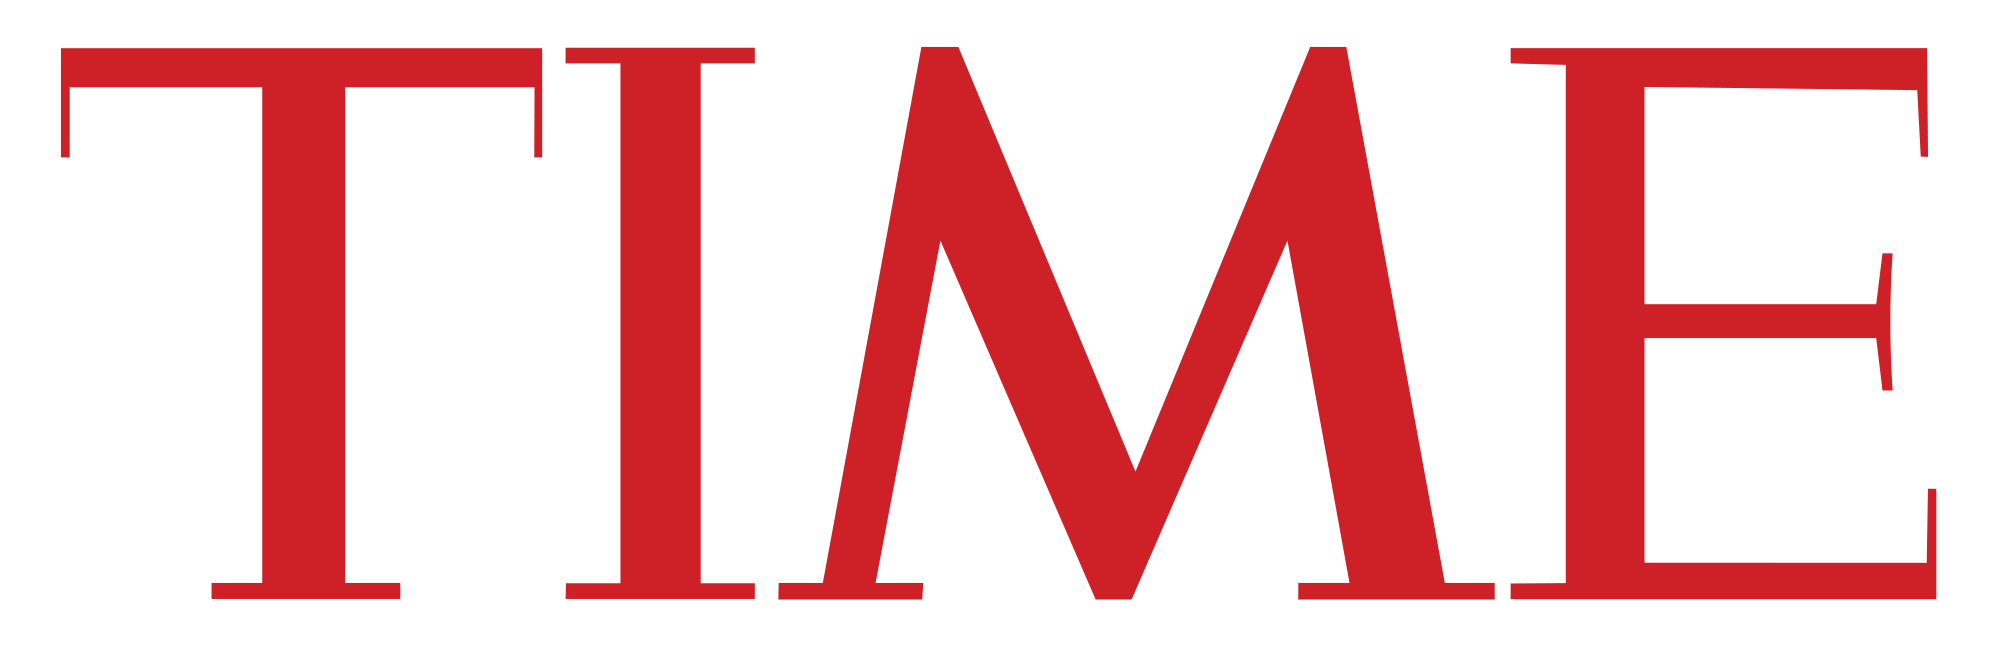 Time magazine logo png. Image gagapedia fandom powered